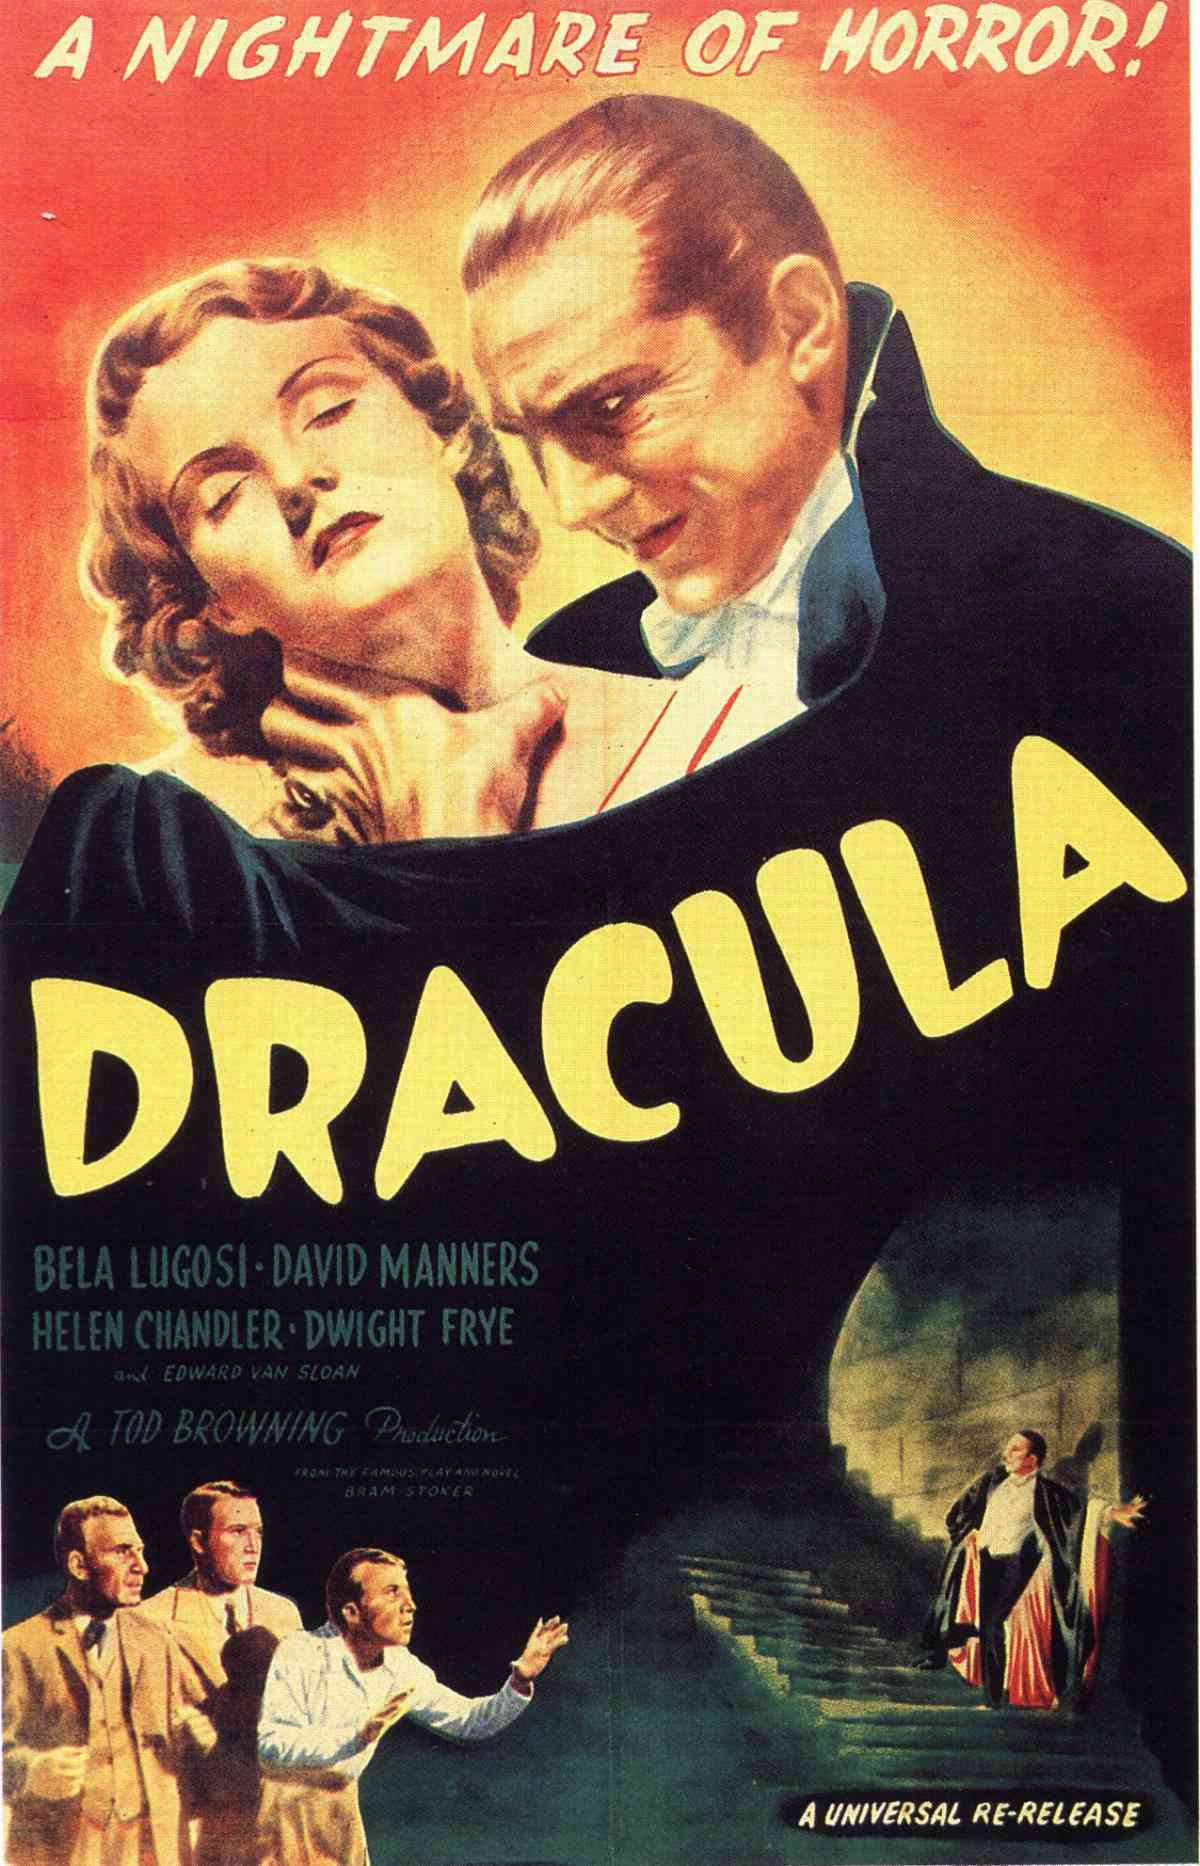 We can thank Bram Stoker and Bela Lugasi for our modern-day versions of vampire lore